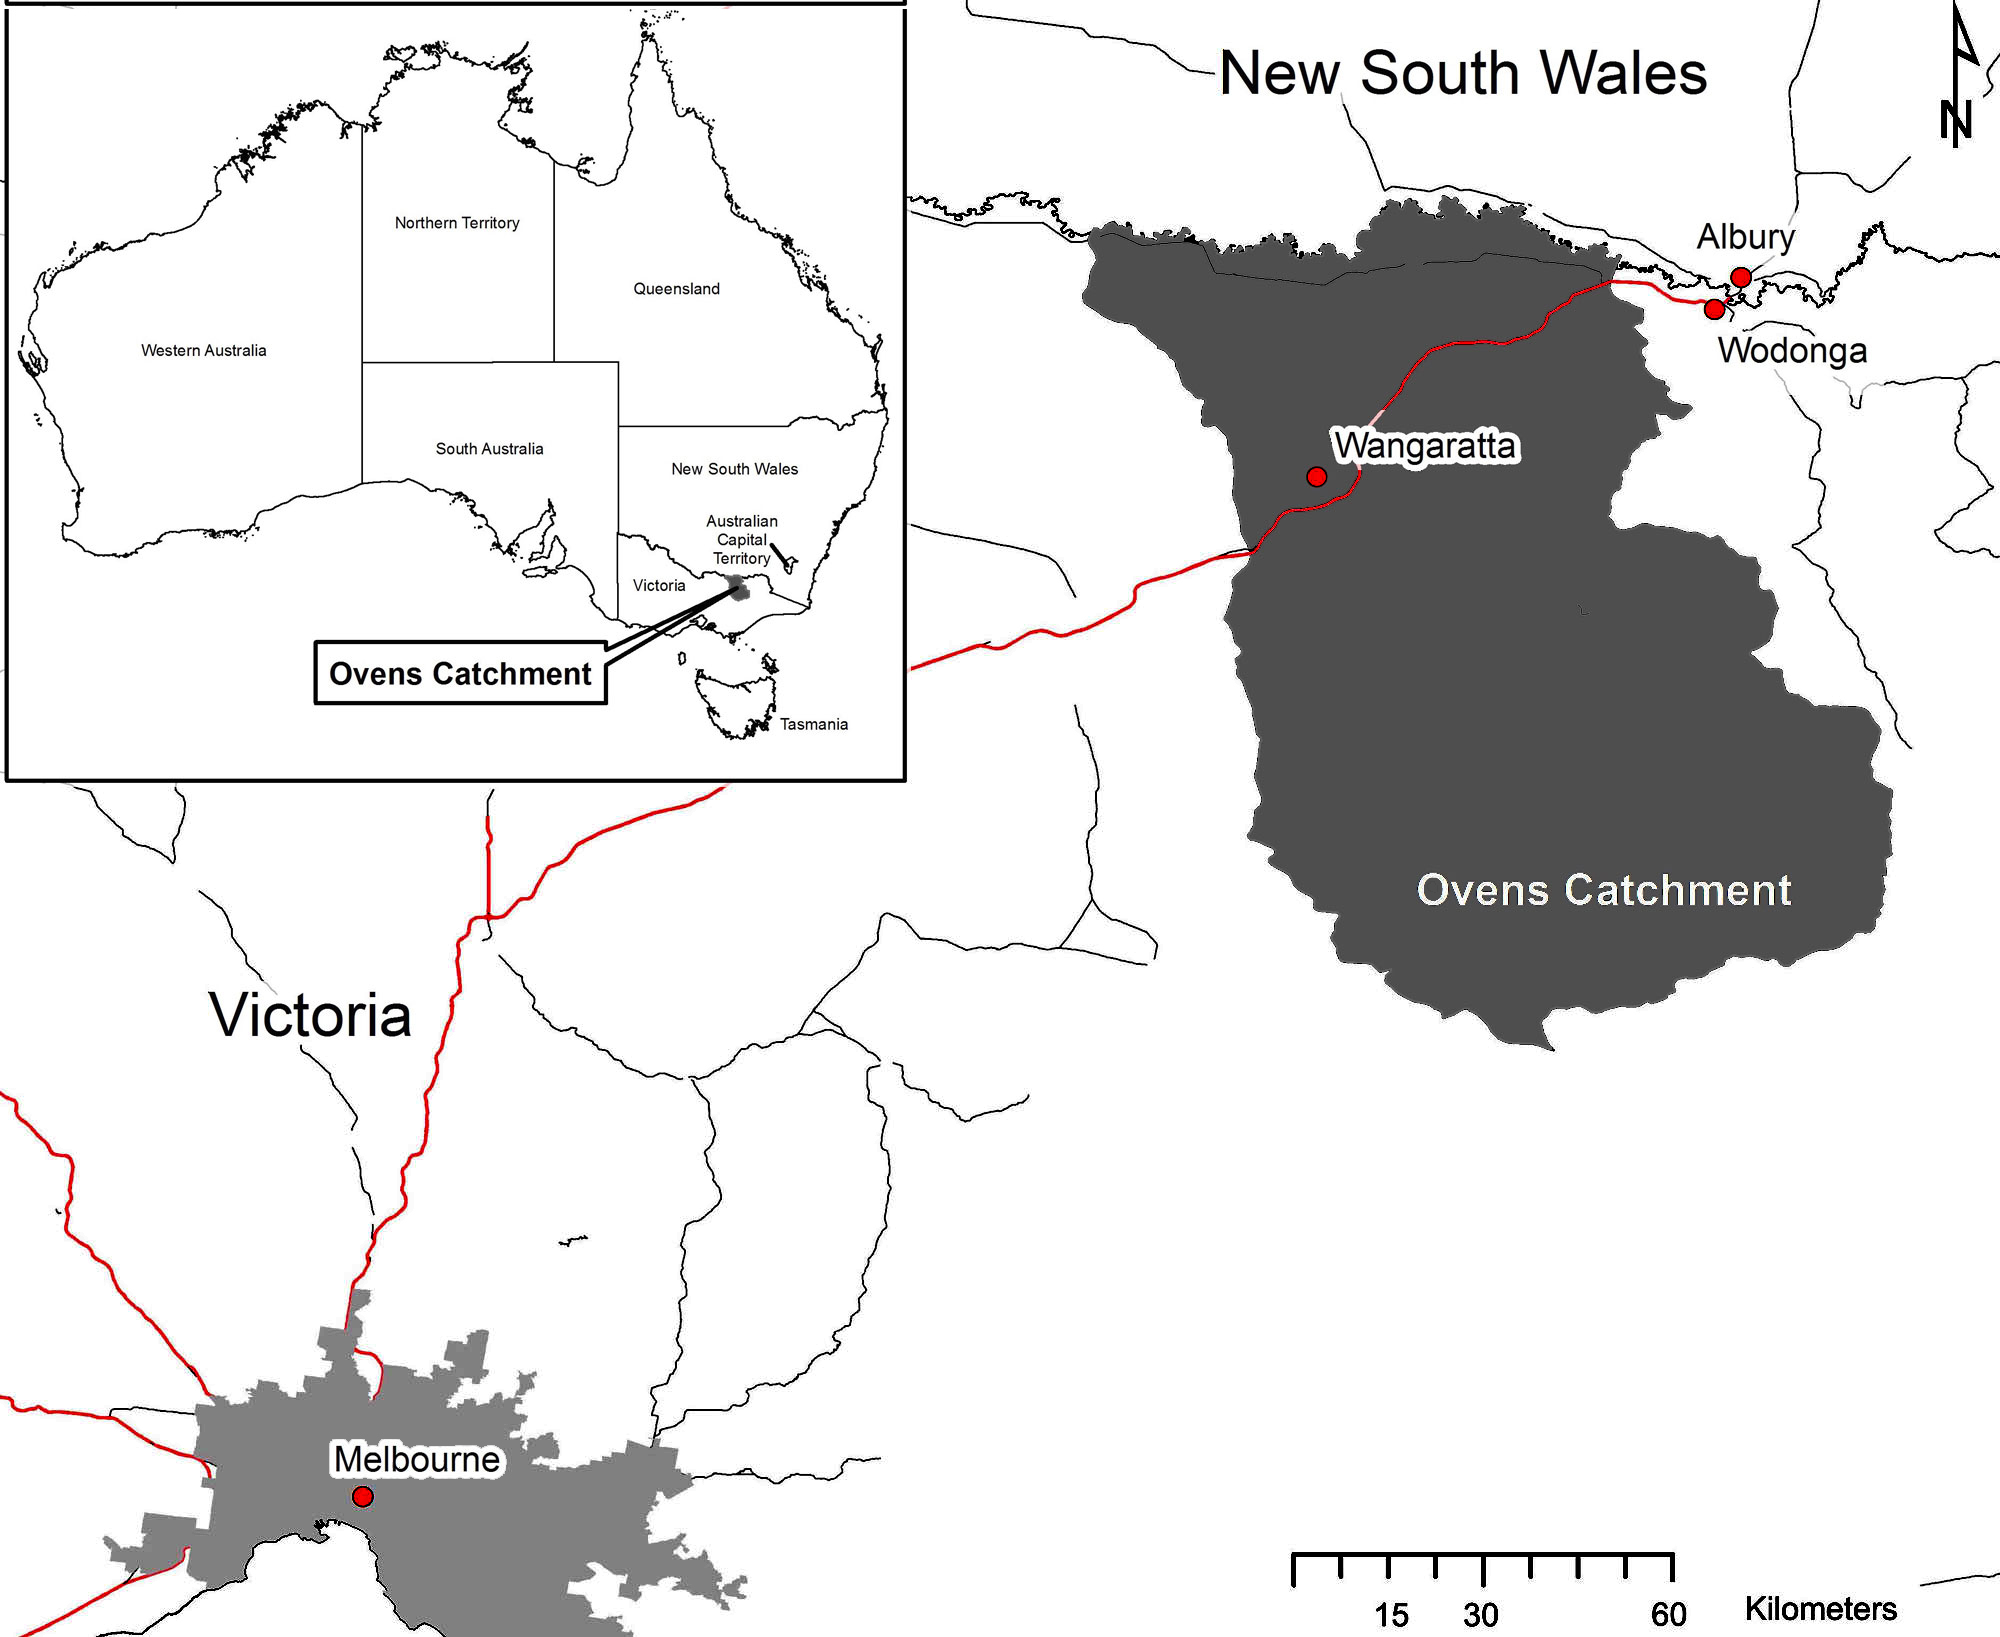 Victoria In Australia Map.Fig 2 Map Of Ovens Catchment Victoria Australia The Red Line Is